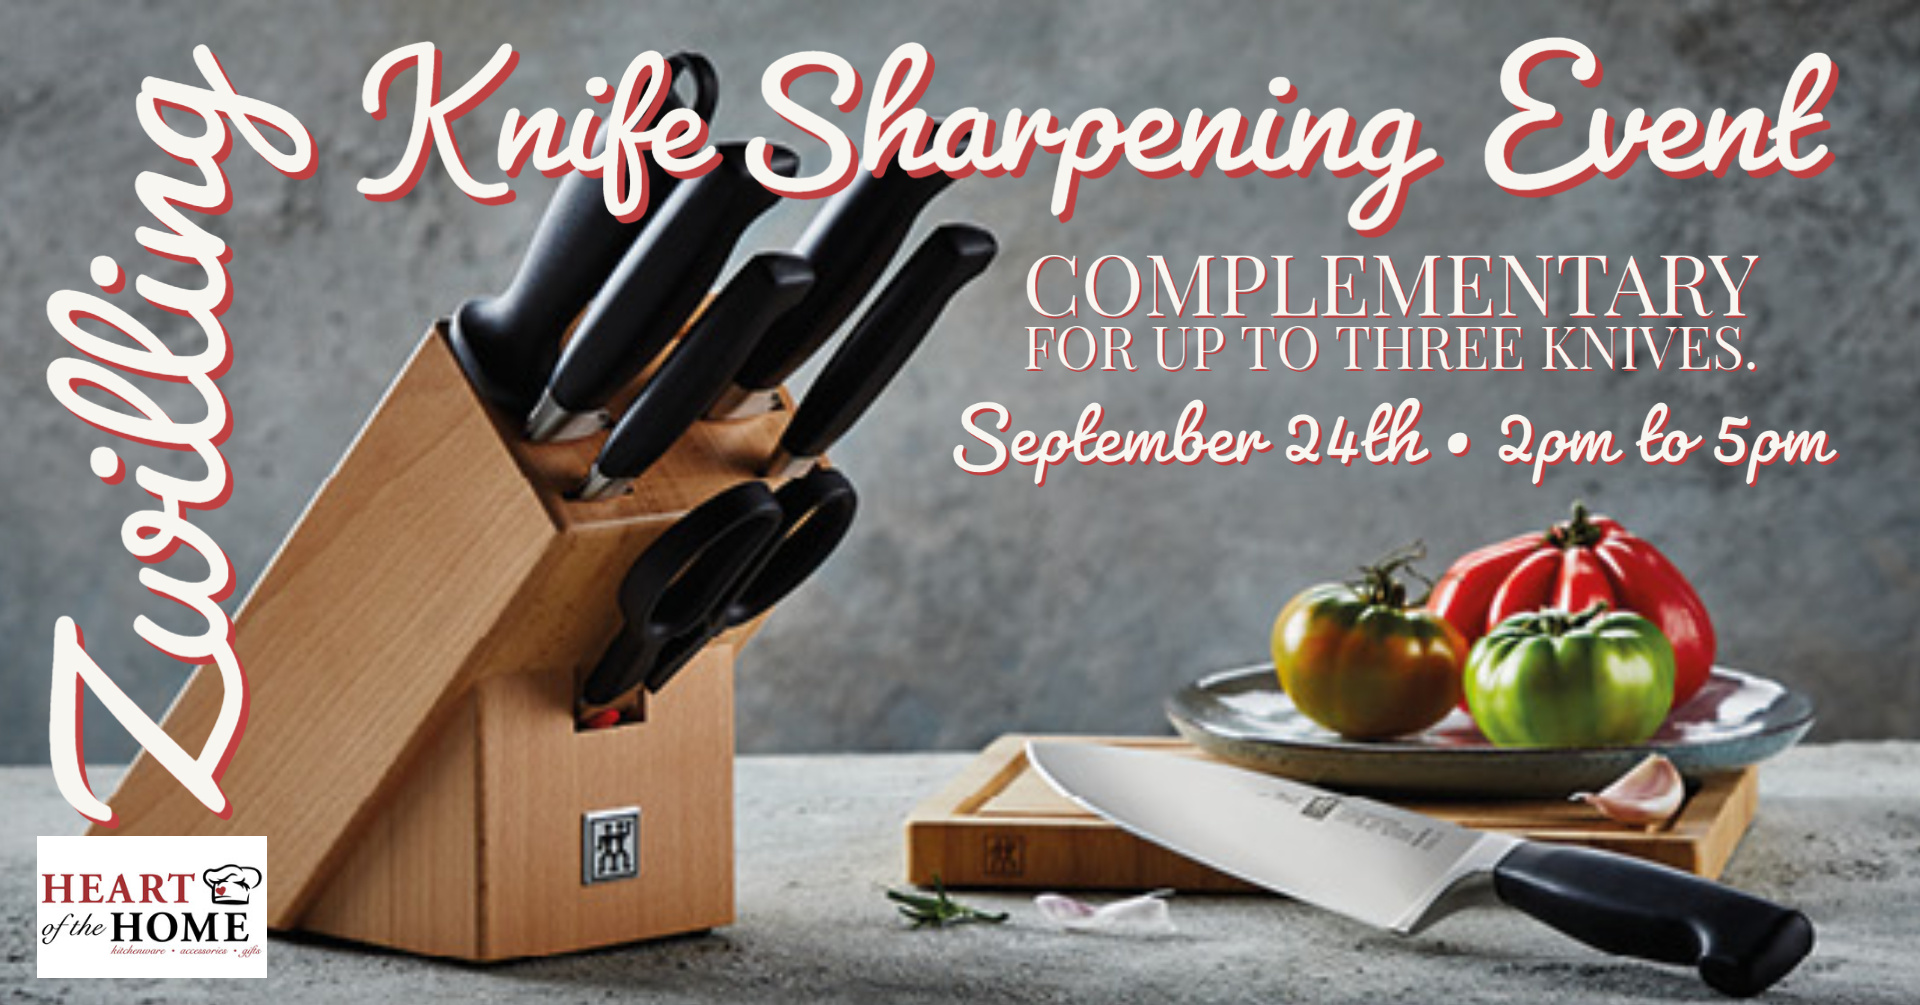 Zwilling Knife Sharpening Event at Heart of the Home YEG